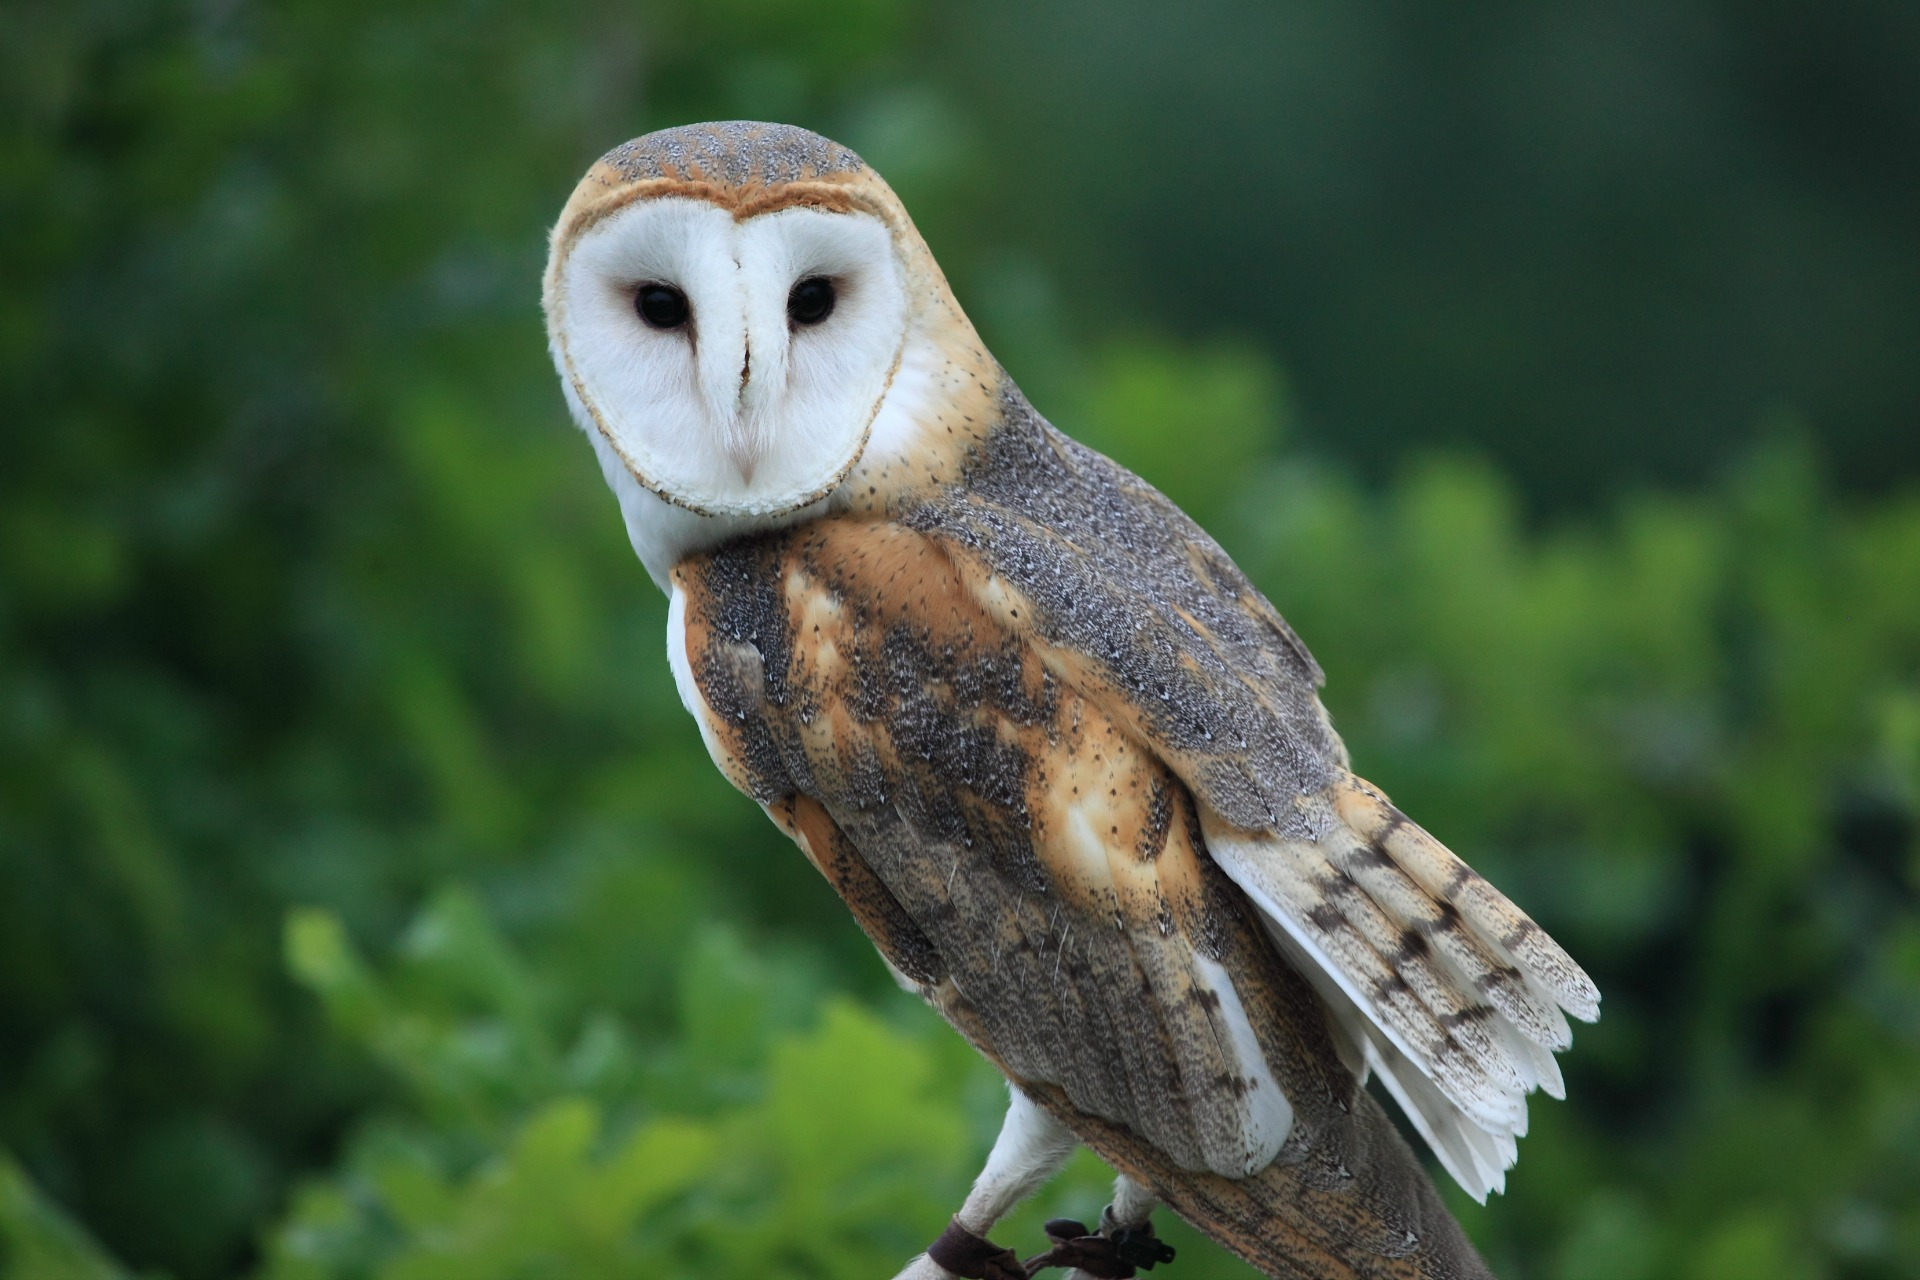 Should the barn owl be the UK's national bird?